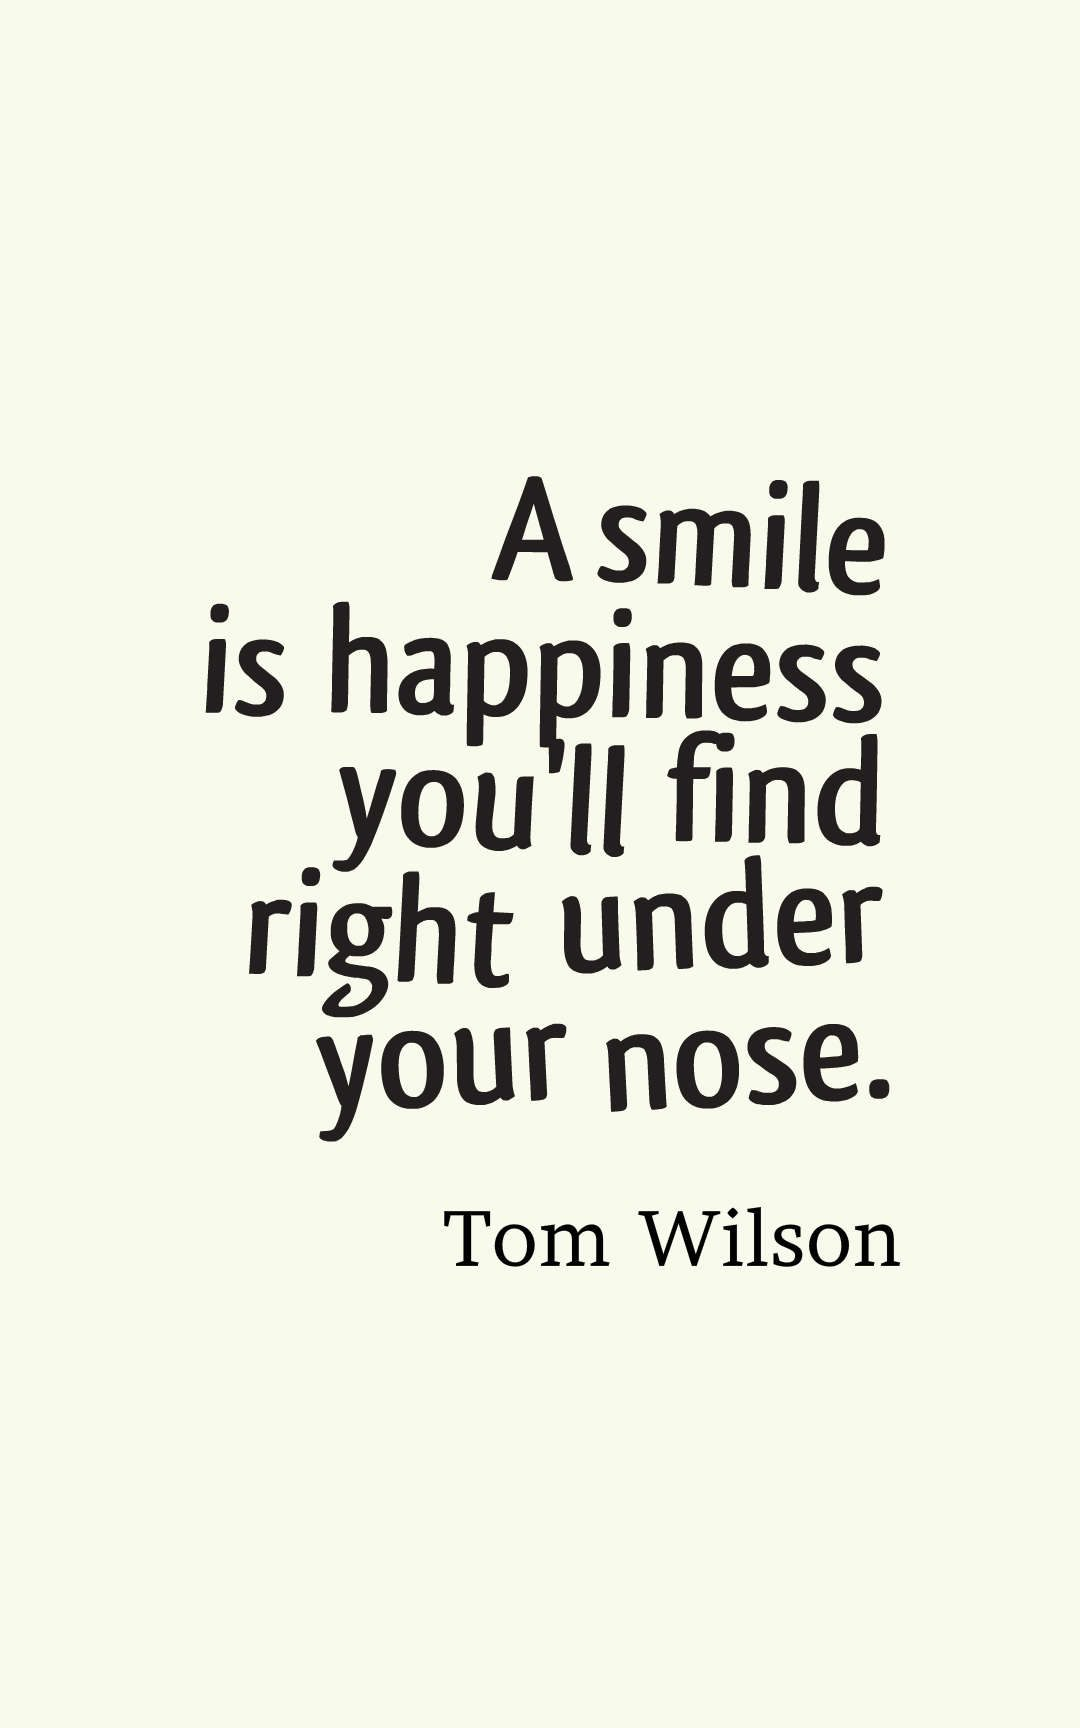 45 Inspirational Happiness Quotes And Sayings With Images